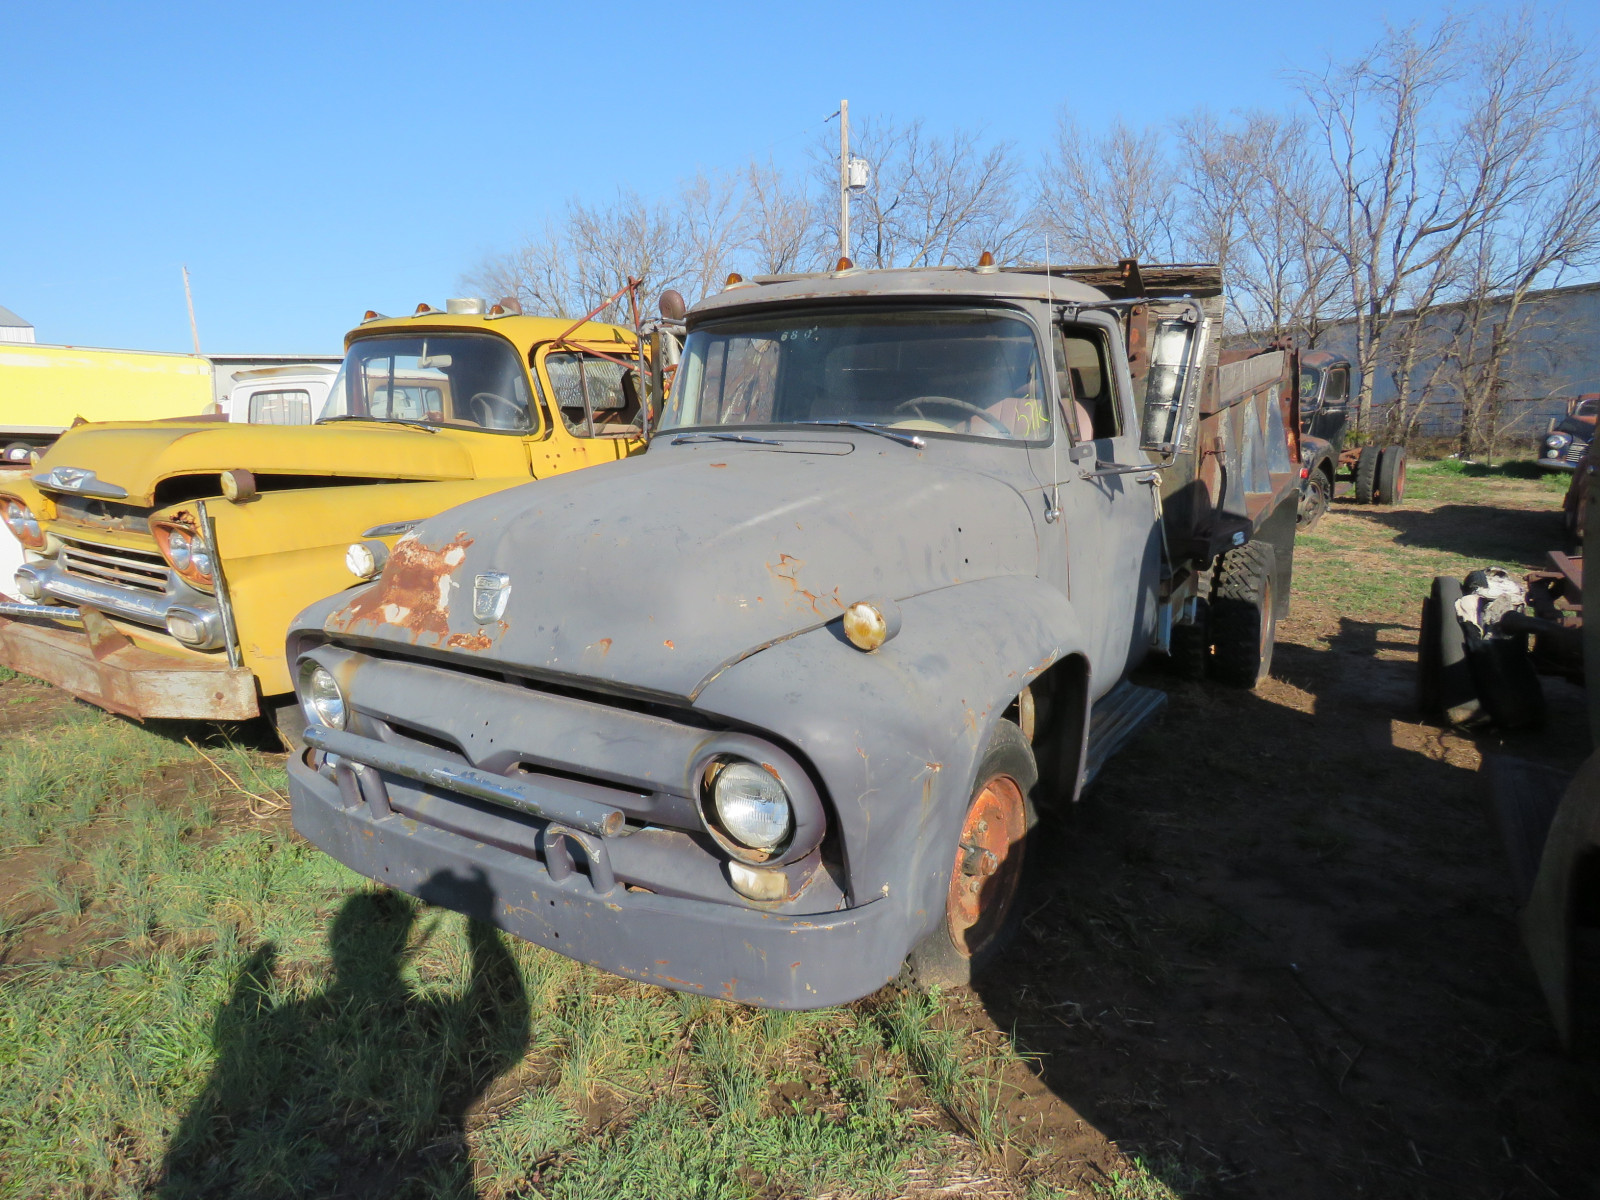 1953 Ford Dump Truck - Image 1